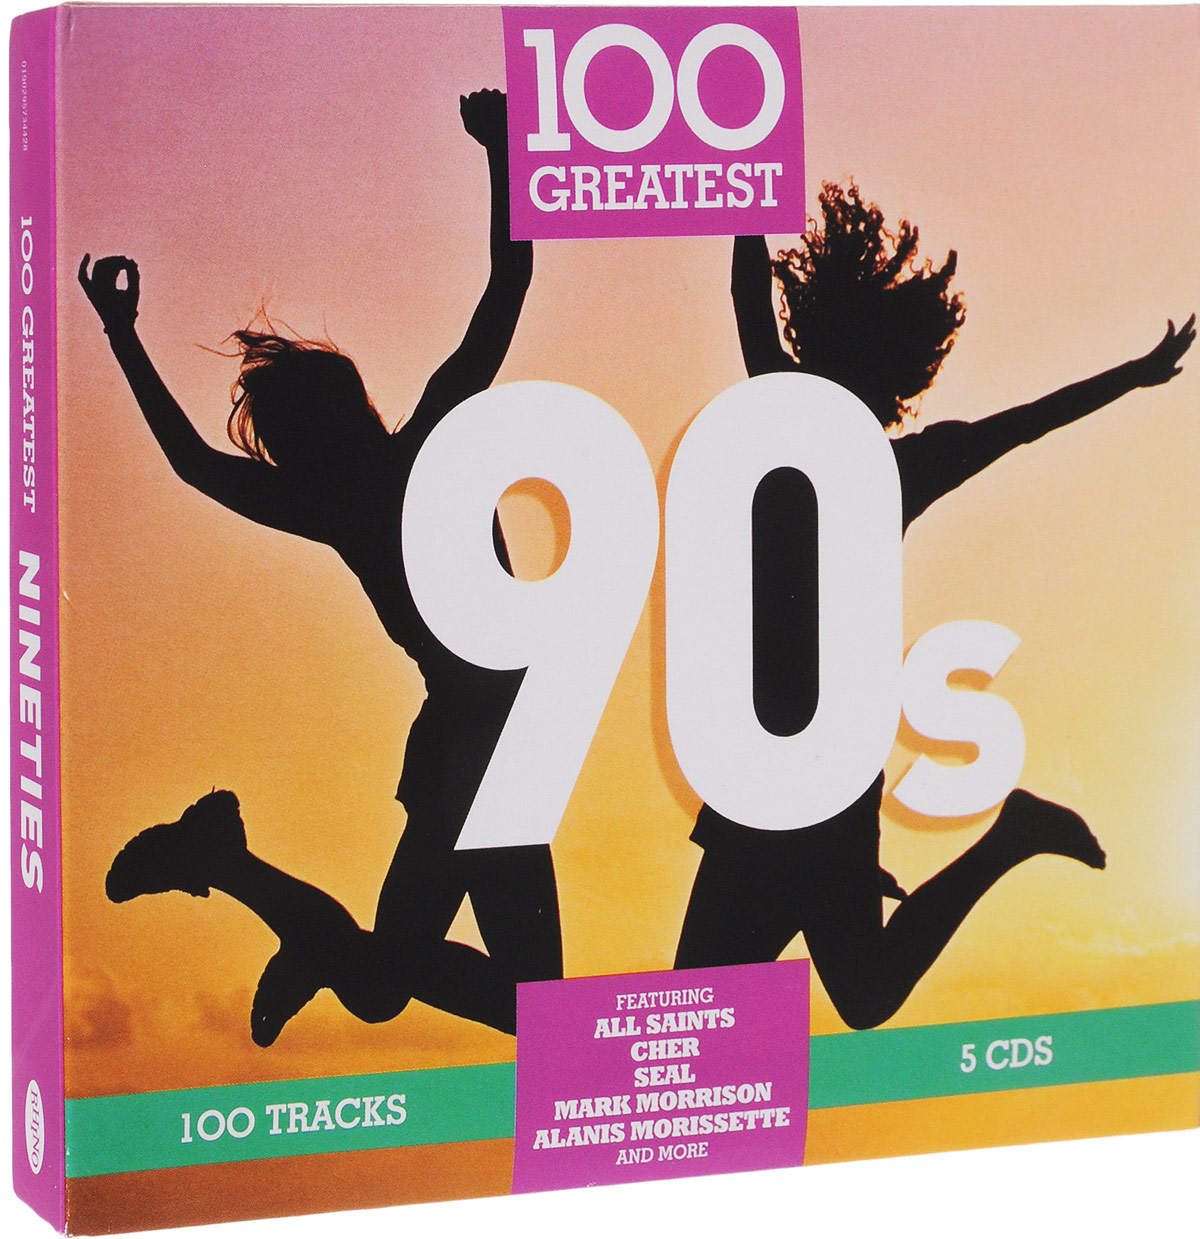 100 Greatest 90s (Special Price Limited Time) (5 CD)